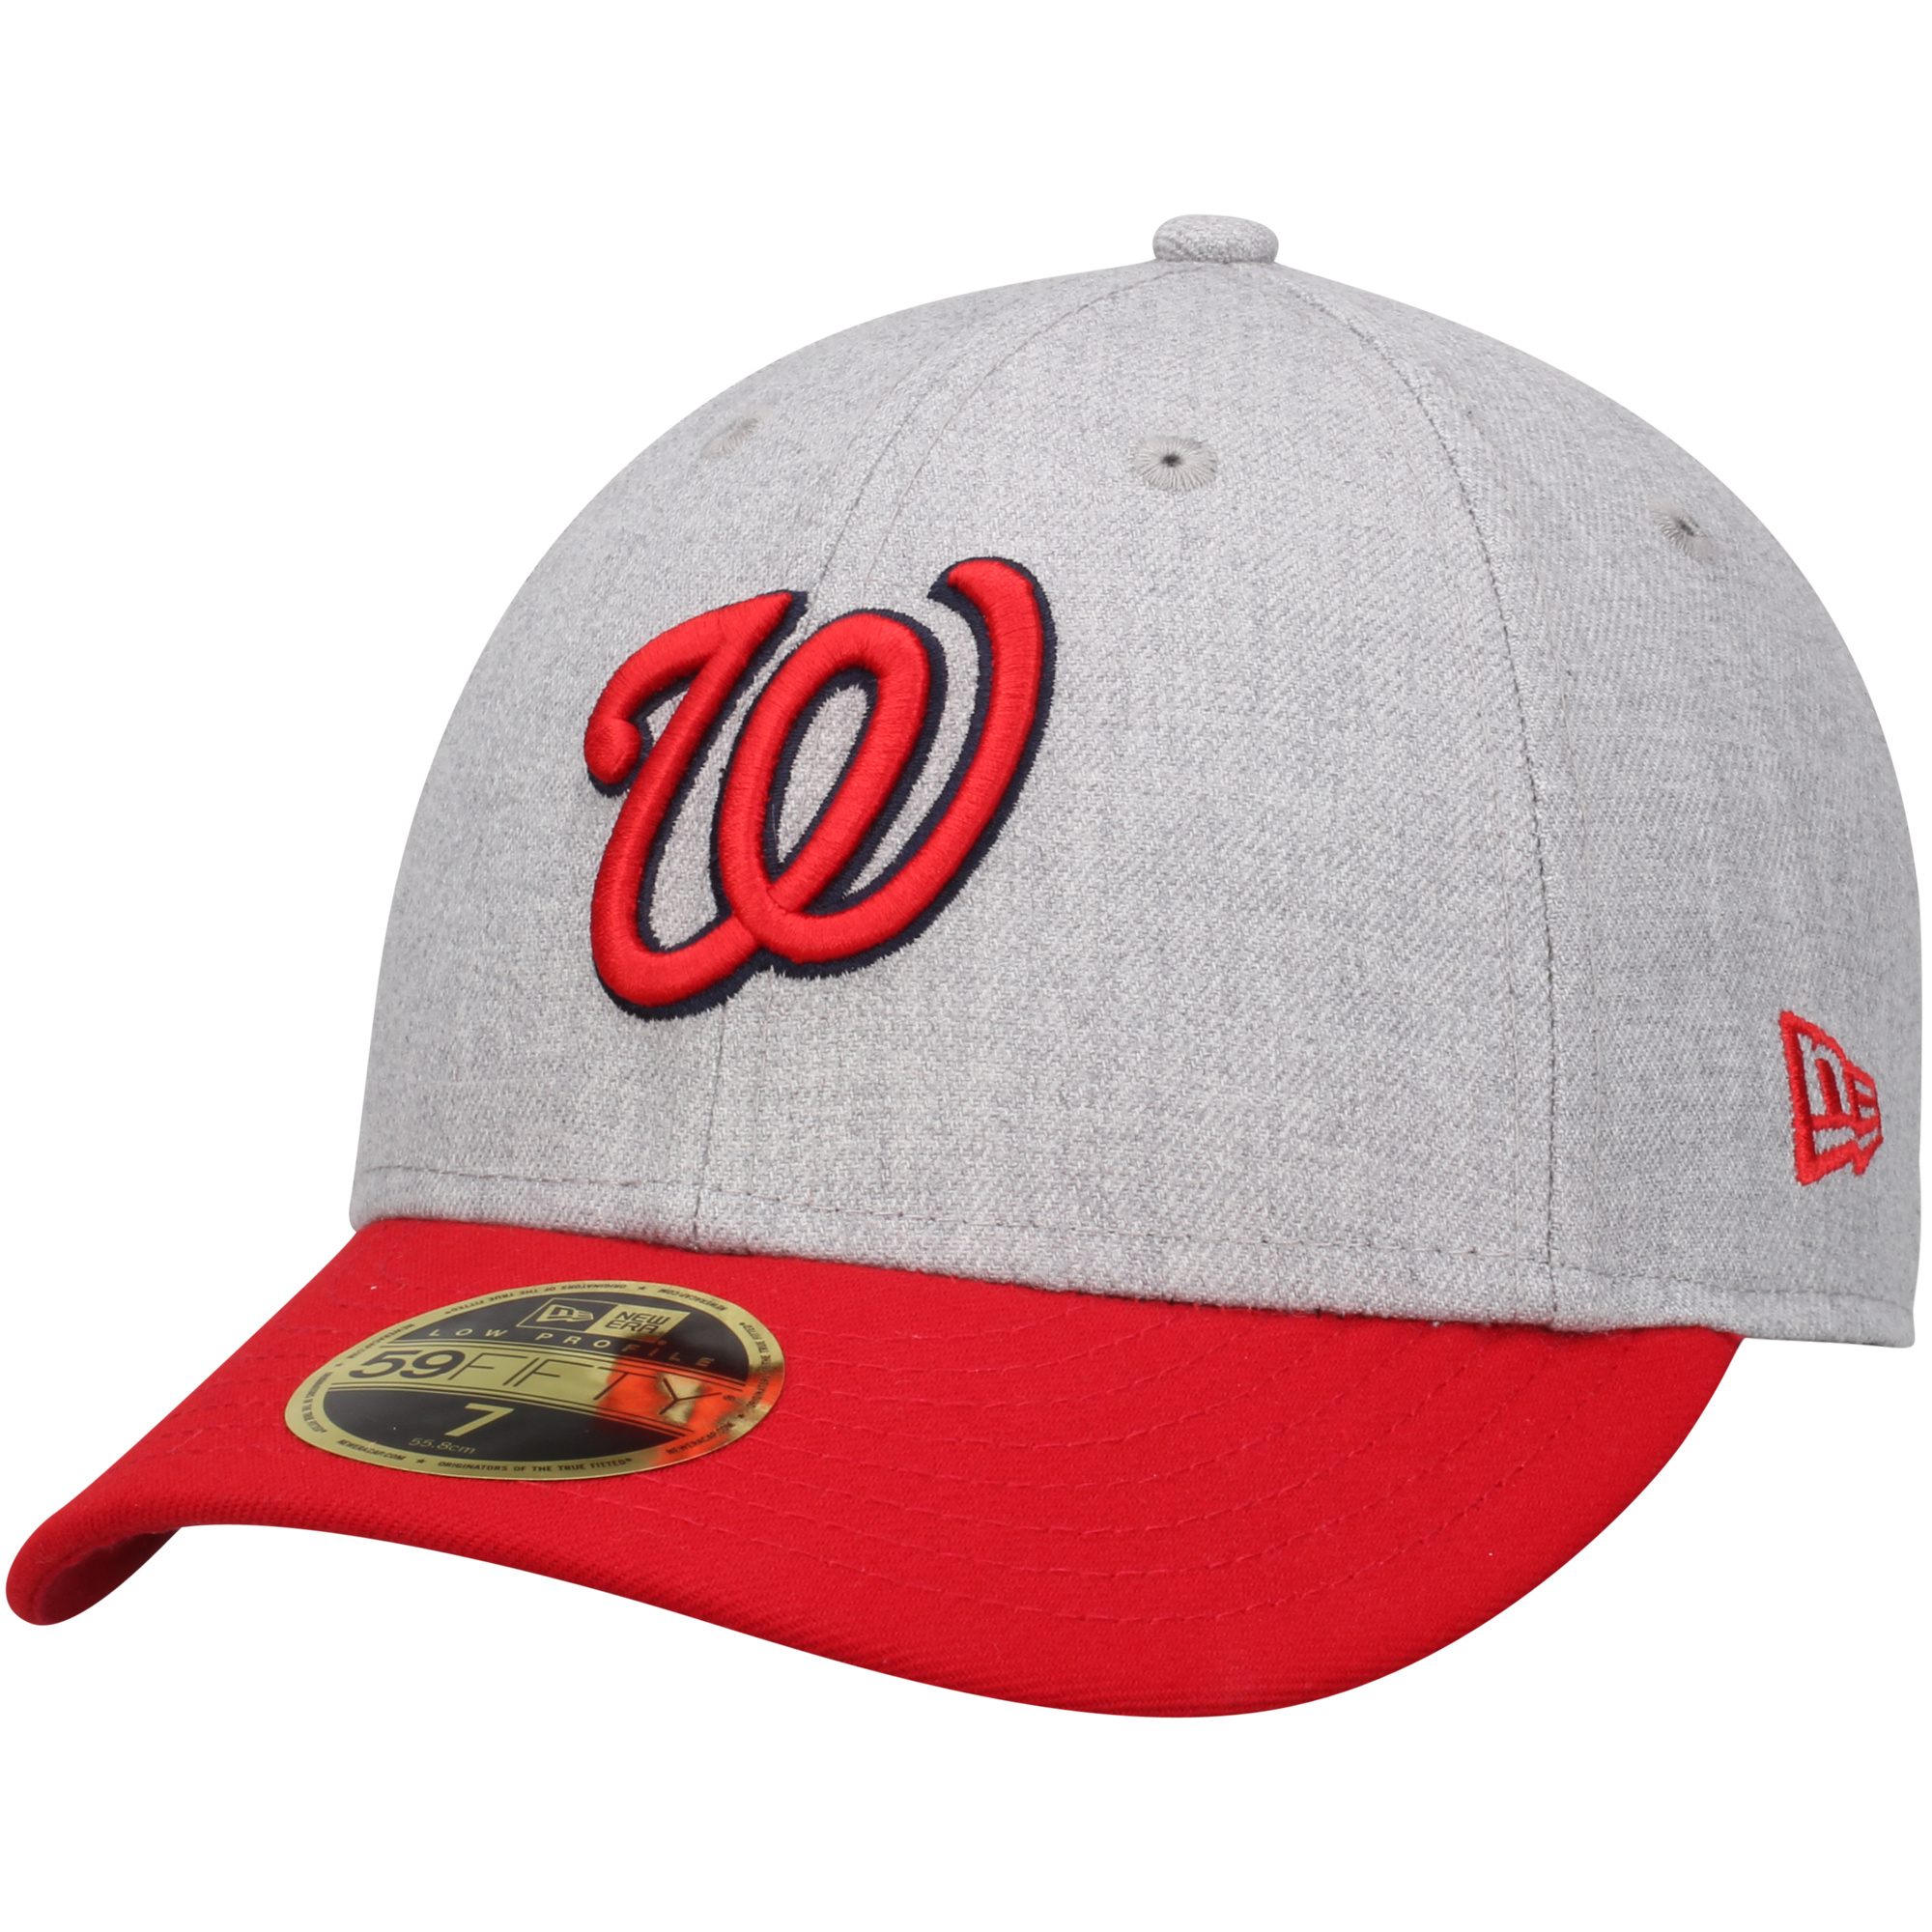 Washington Nationals New Era Change Up Low Profile 59FIFTY Fitted Hat - Heathered Gray/Red